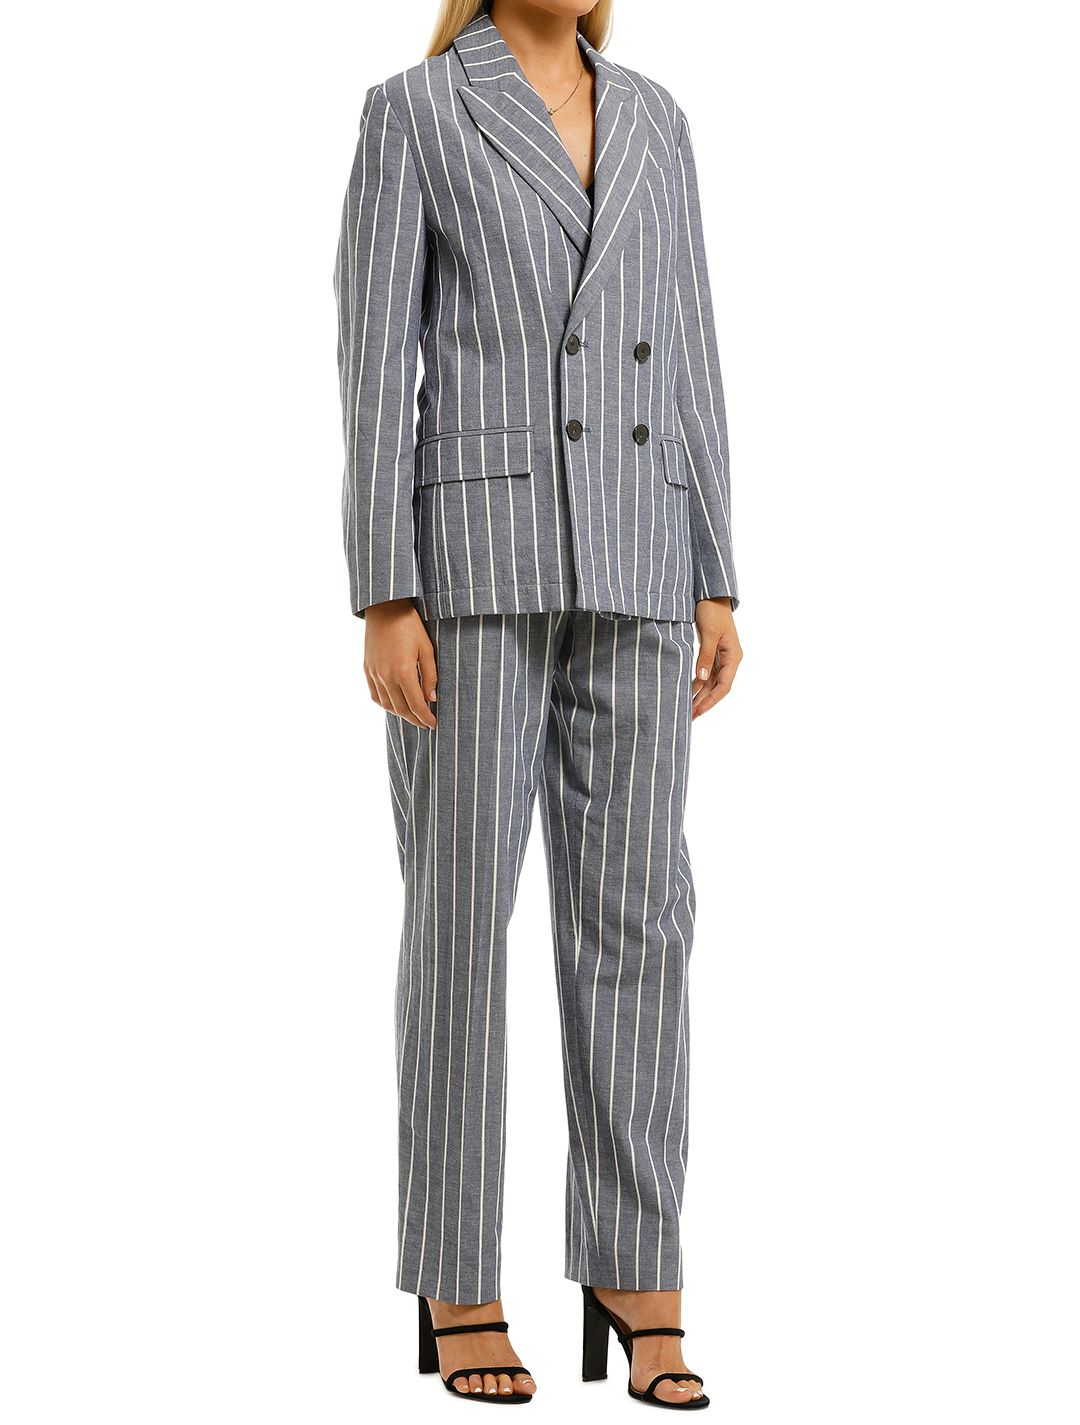 Laquintane-Double-Breasted-Jacket-and-Pant-Set-Indigo-Stripe-Side